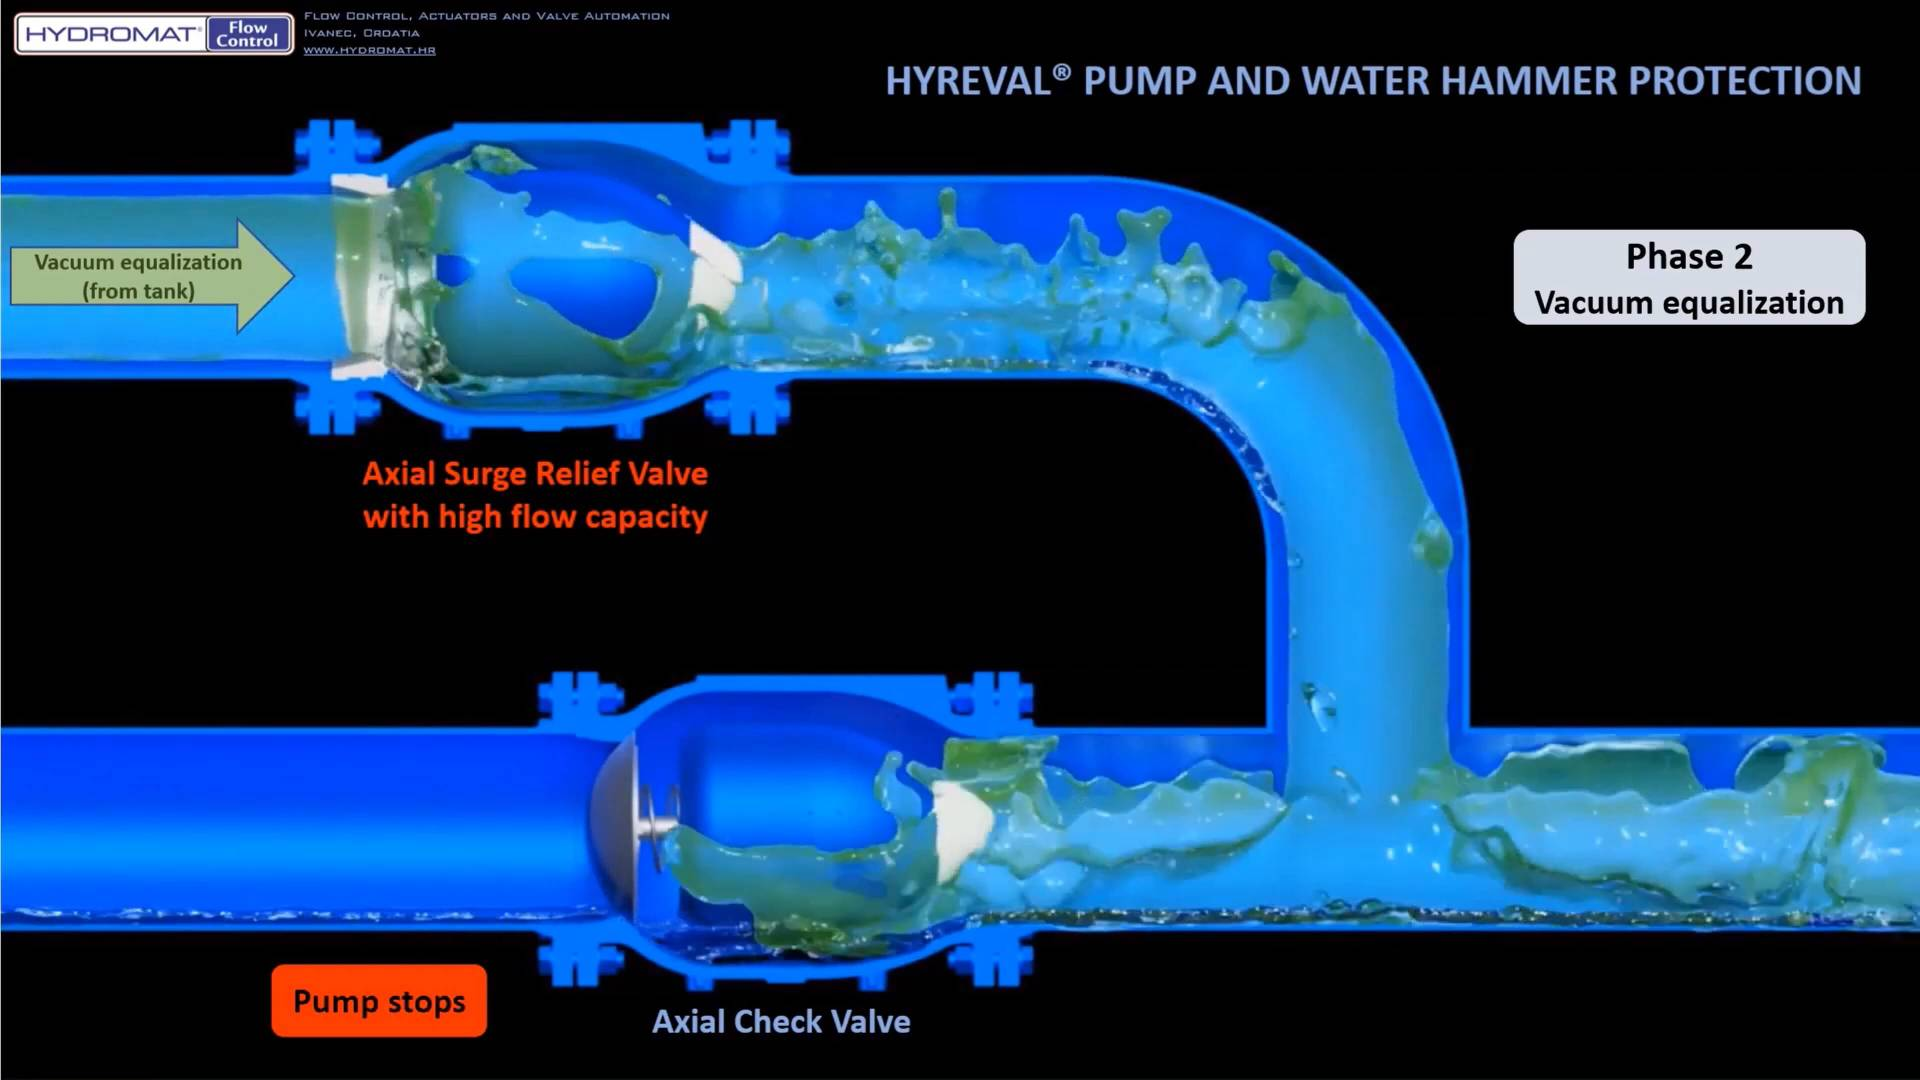 hydromat's water hammer system protection